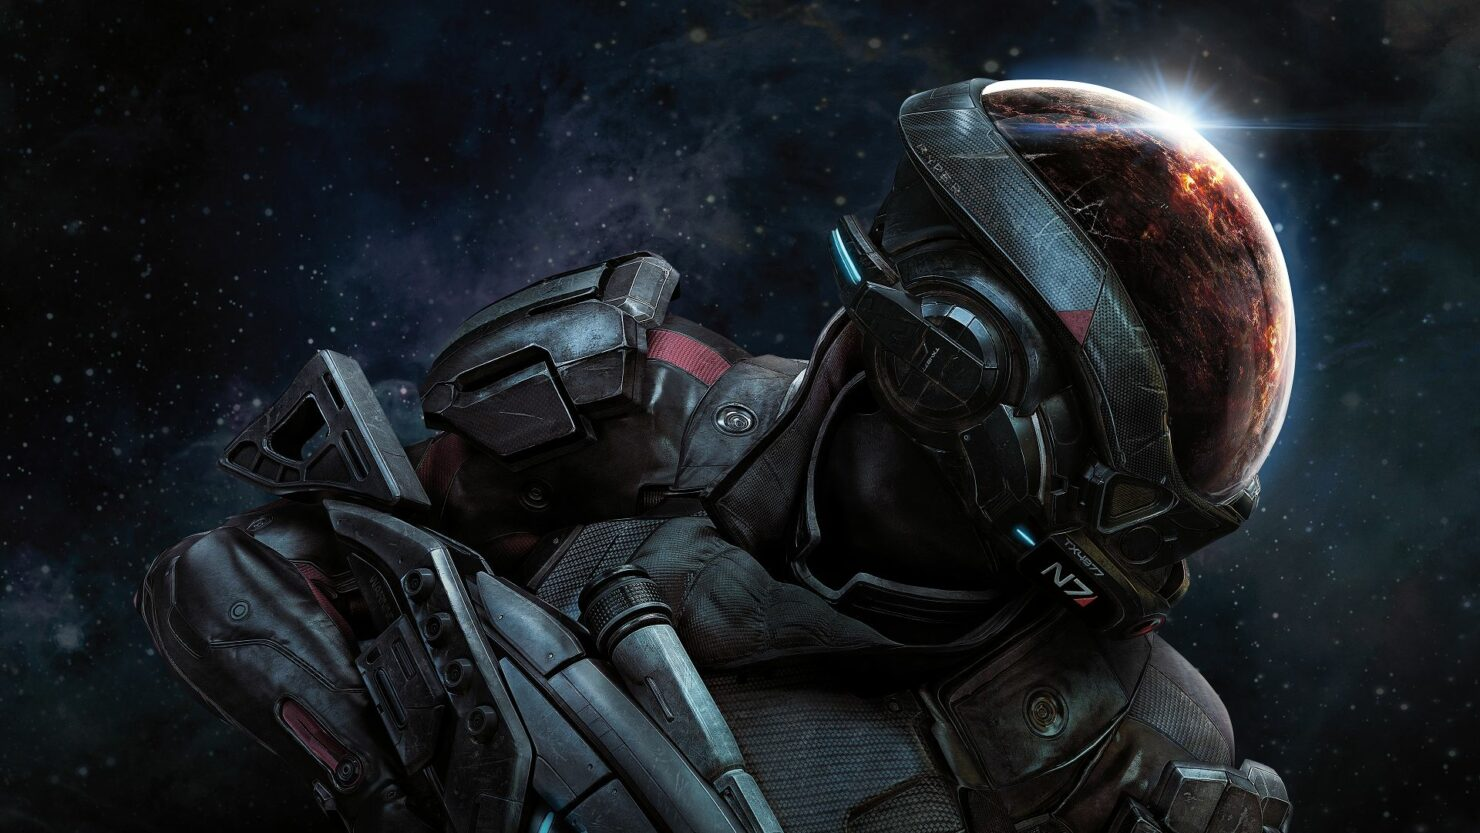 mass effect andromeda 900p xbox one uncapped fps pc